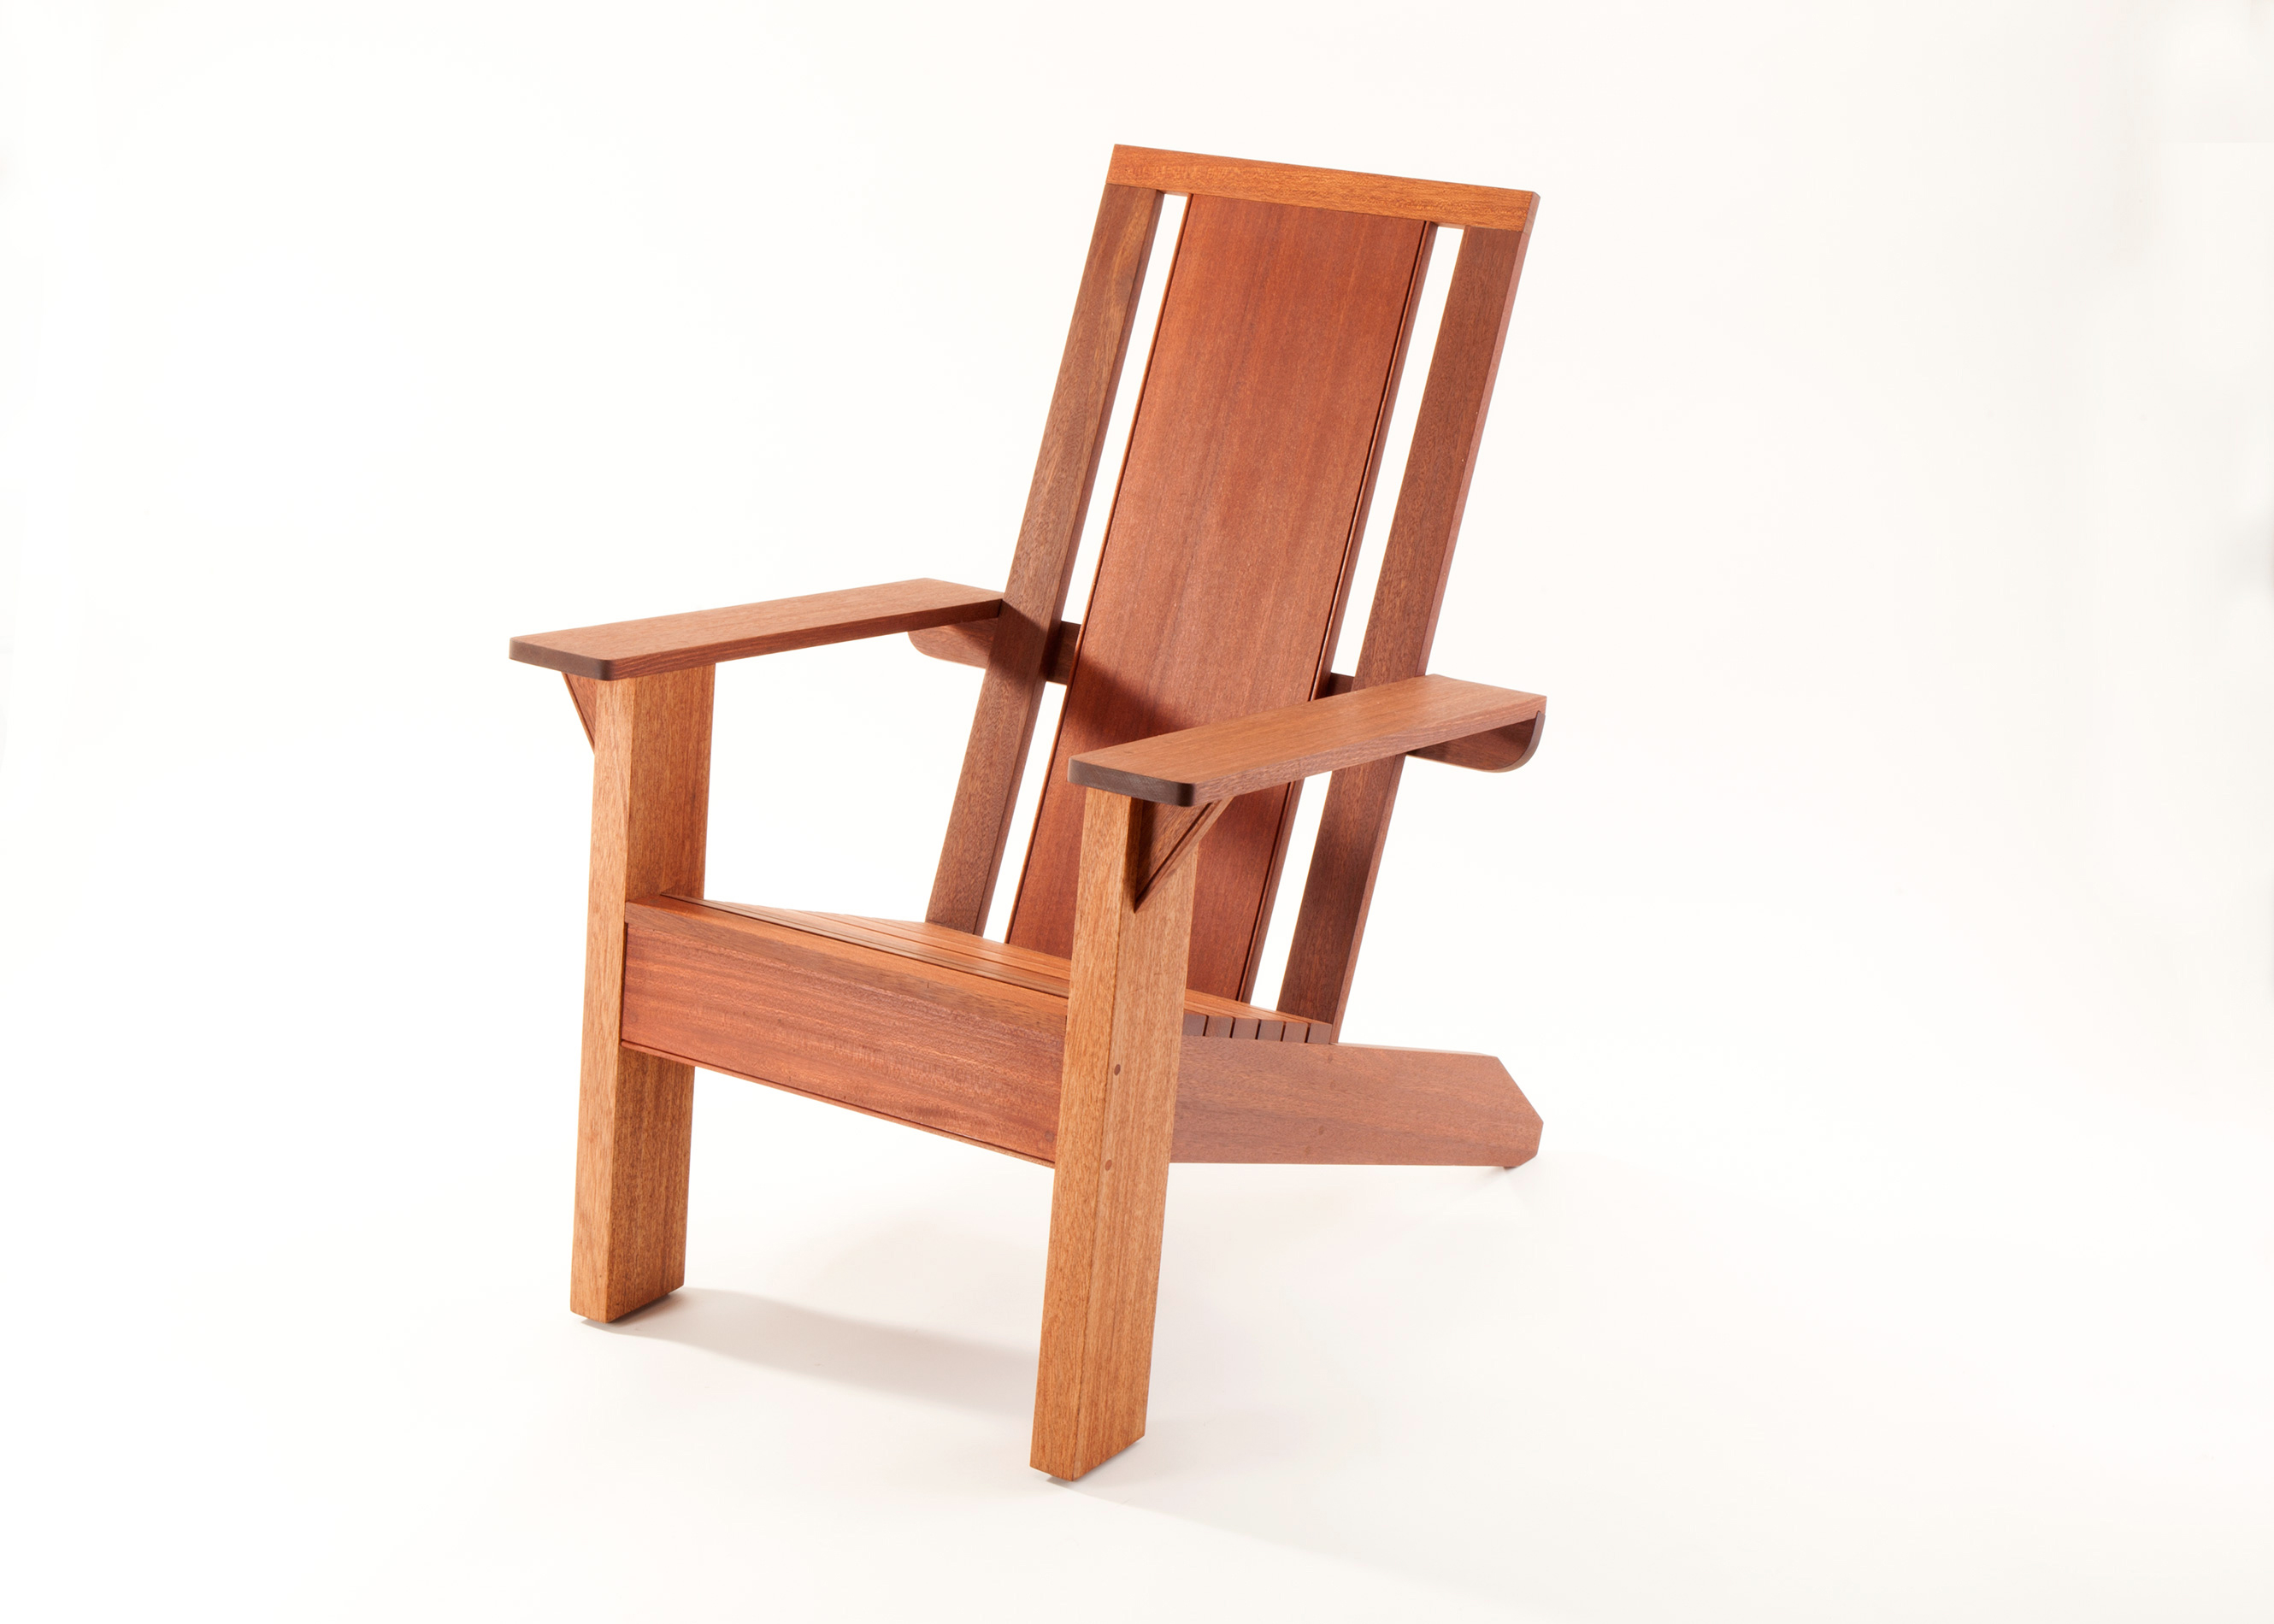 Charmant Adirondack Chair